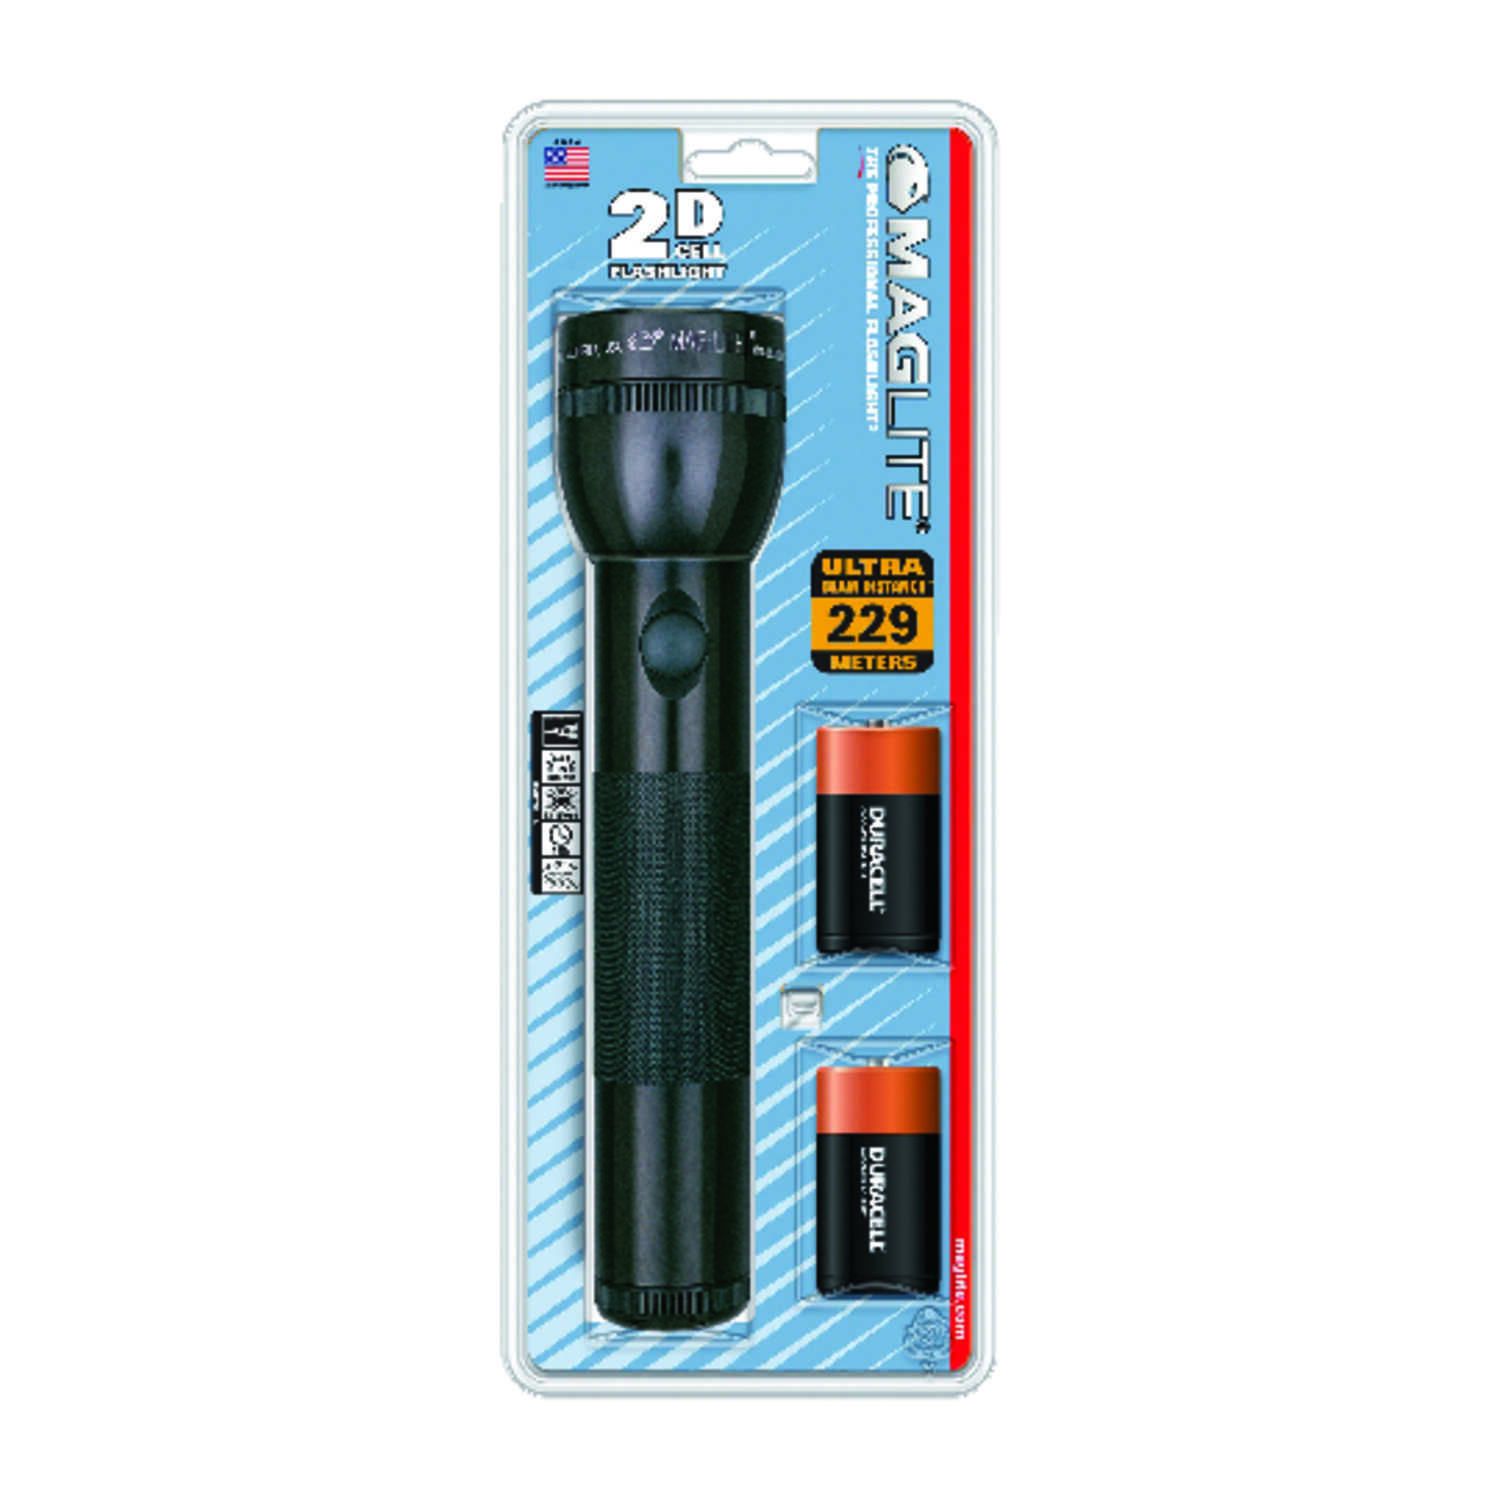 Maglite  19 lumens Black  Xenon  Flashlight  D Battery